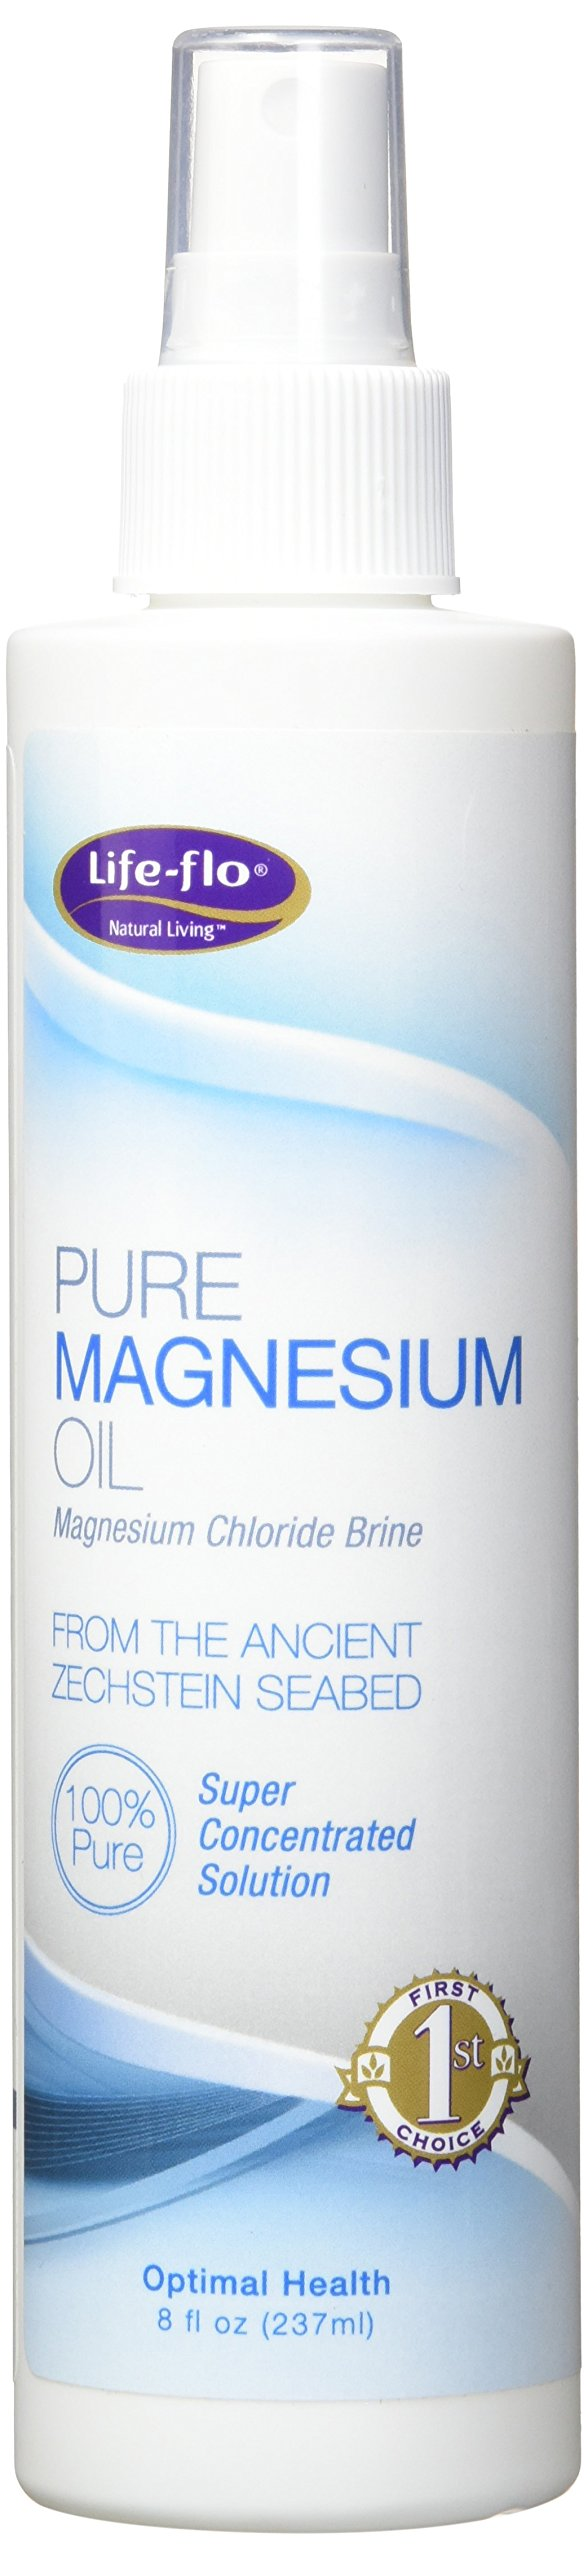 Life-flo Pure Magnesium Oil, 8 Ounce